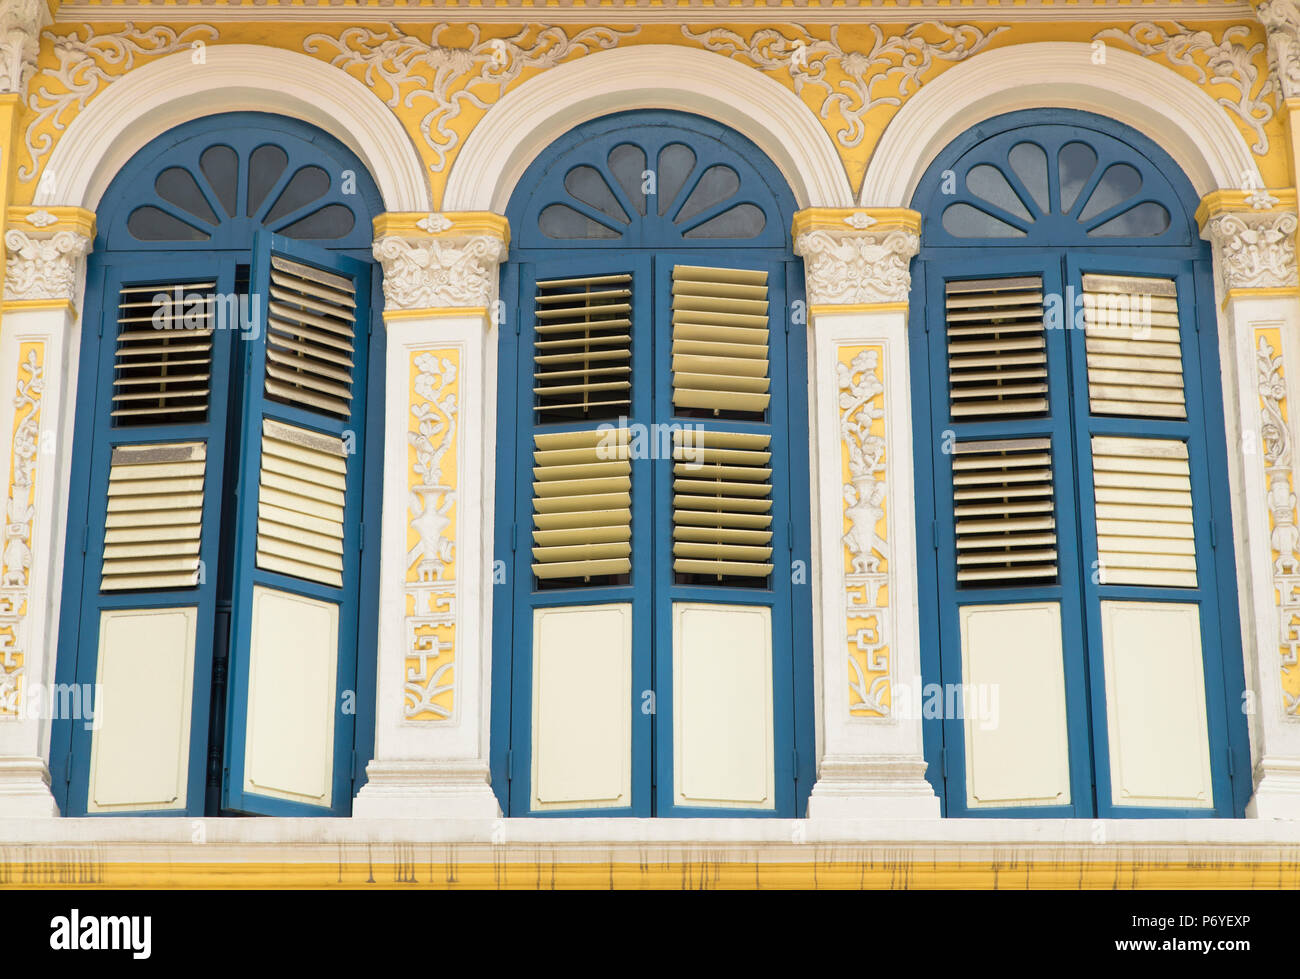 Shutters of traditional shophouse, Singapore - Stock Image